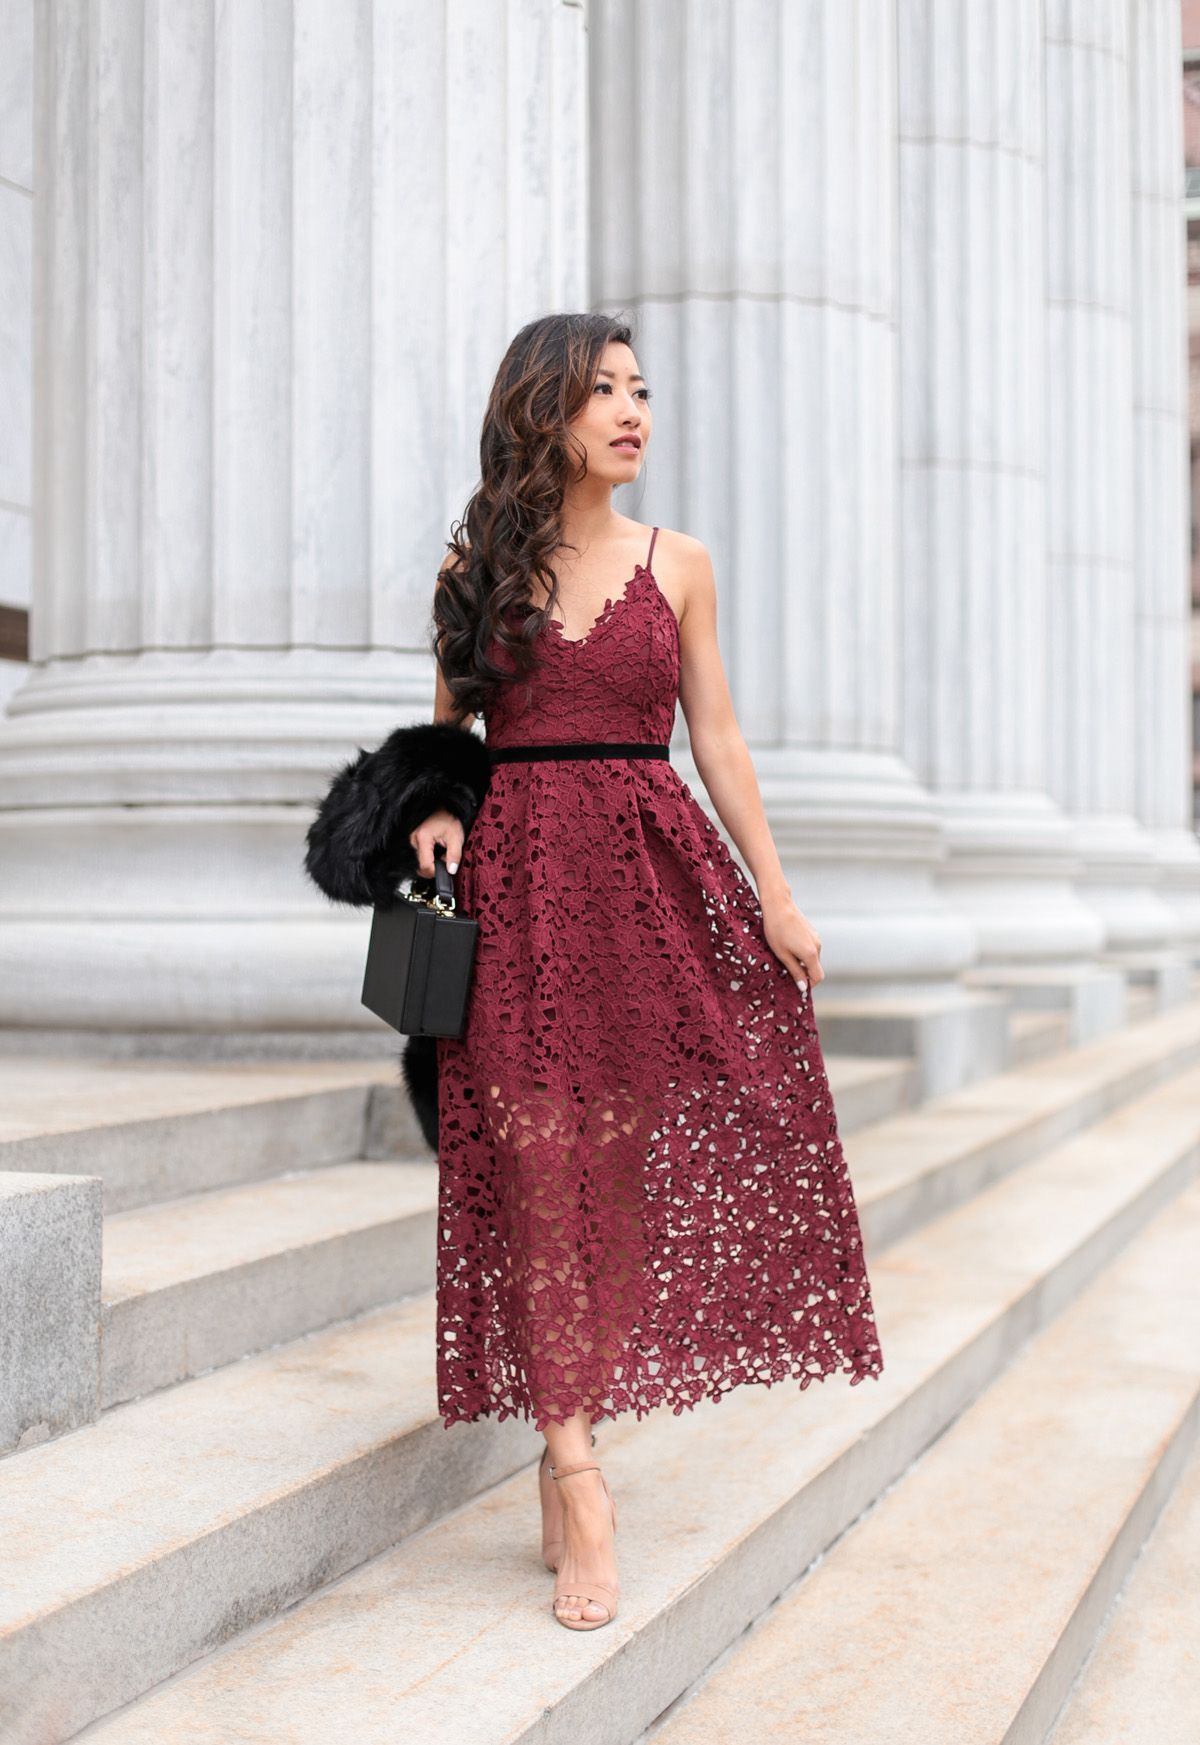 What To Wear To A Winter Black Tie Holiday Party Or Wedding Petite Fashion Black Tie Dress Wedding Wedding Guest Outfit Winter Winter Wedding Outfits,Essense Of Australia Wedding Dresses For Sale